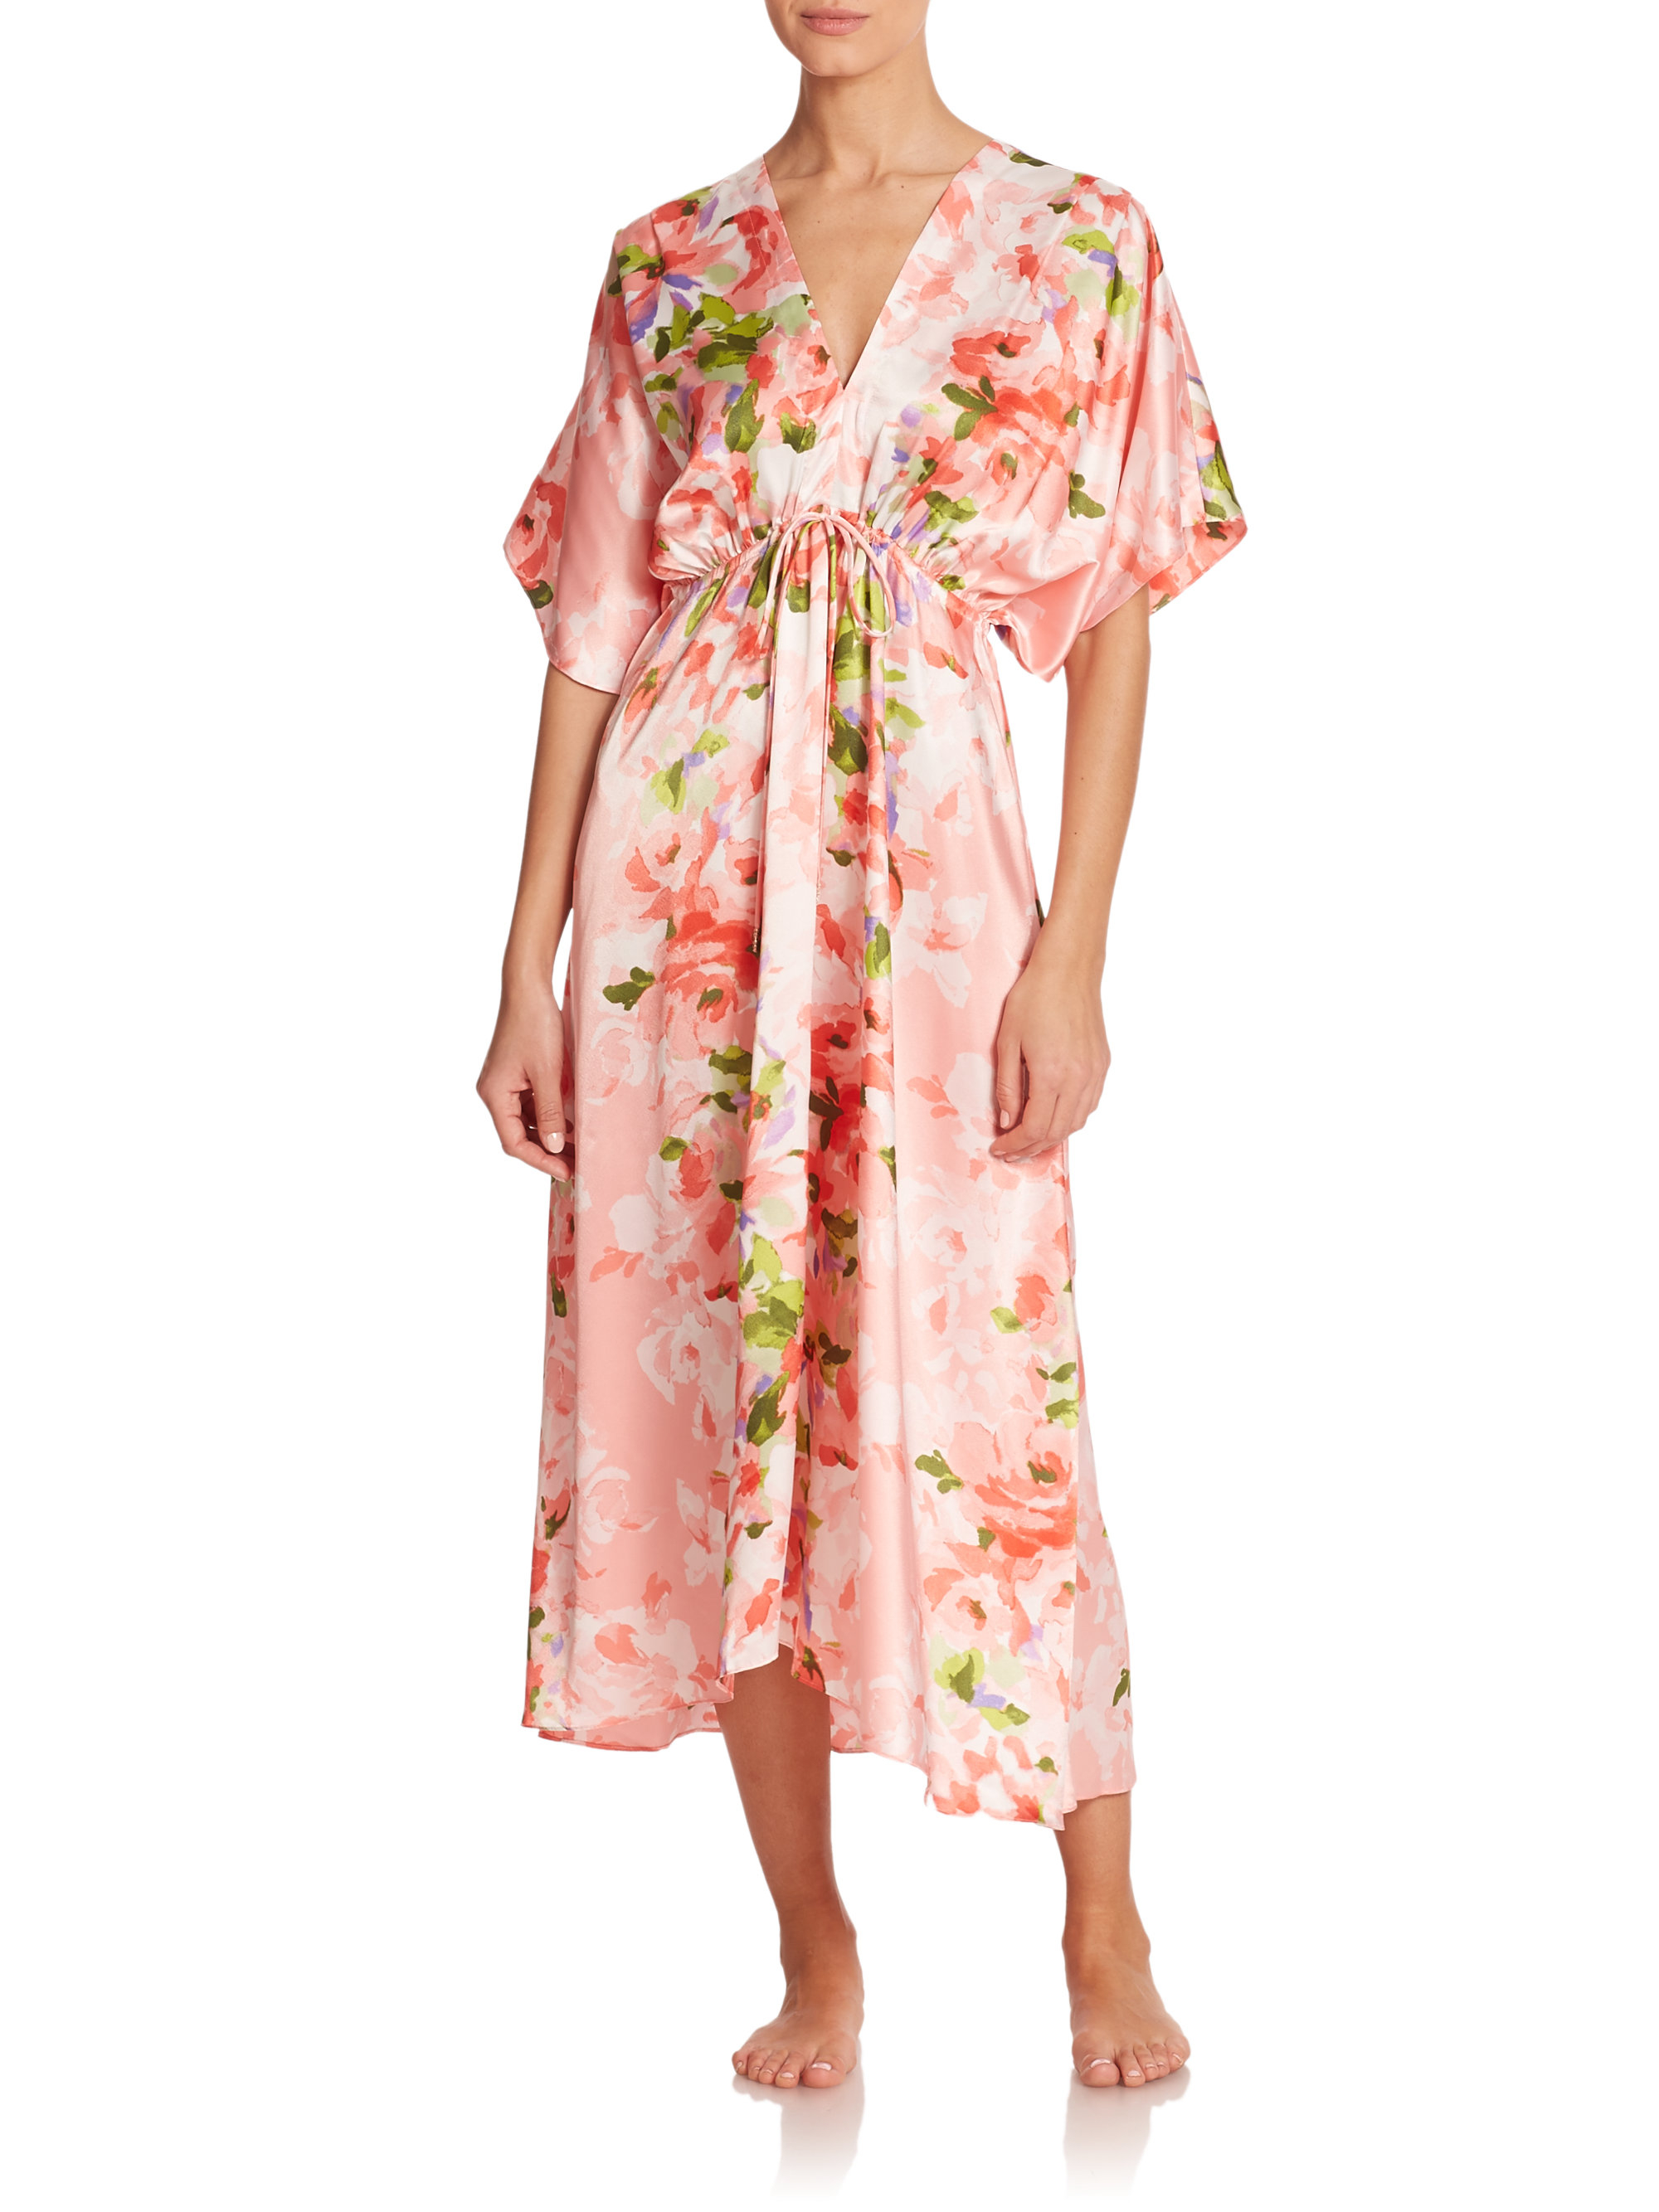 Oscar de la renta garden party floral satin caftan lyst for Caftan avec satin de chaise